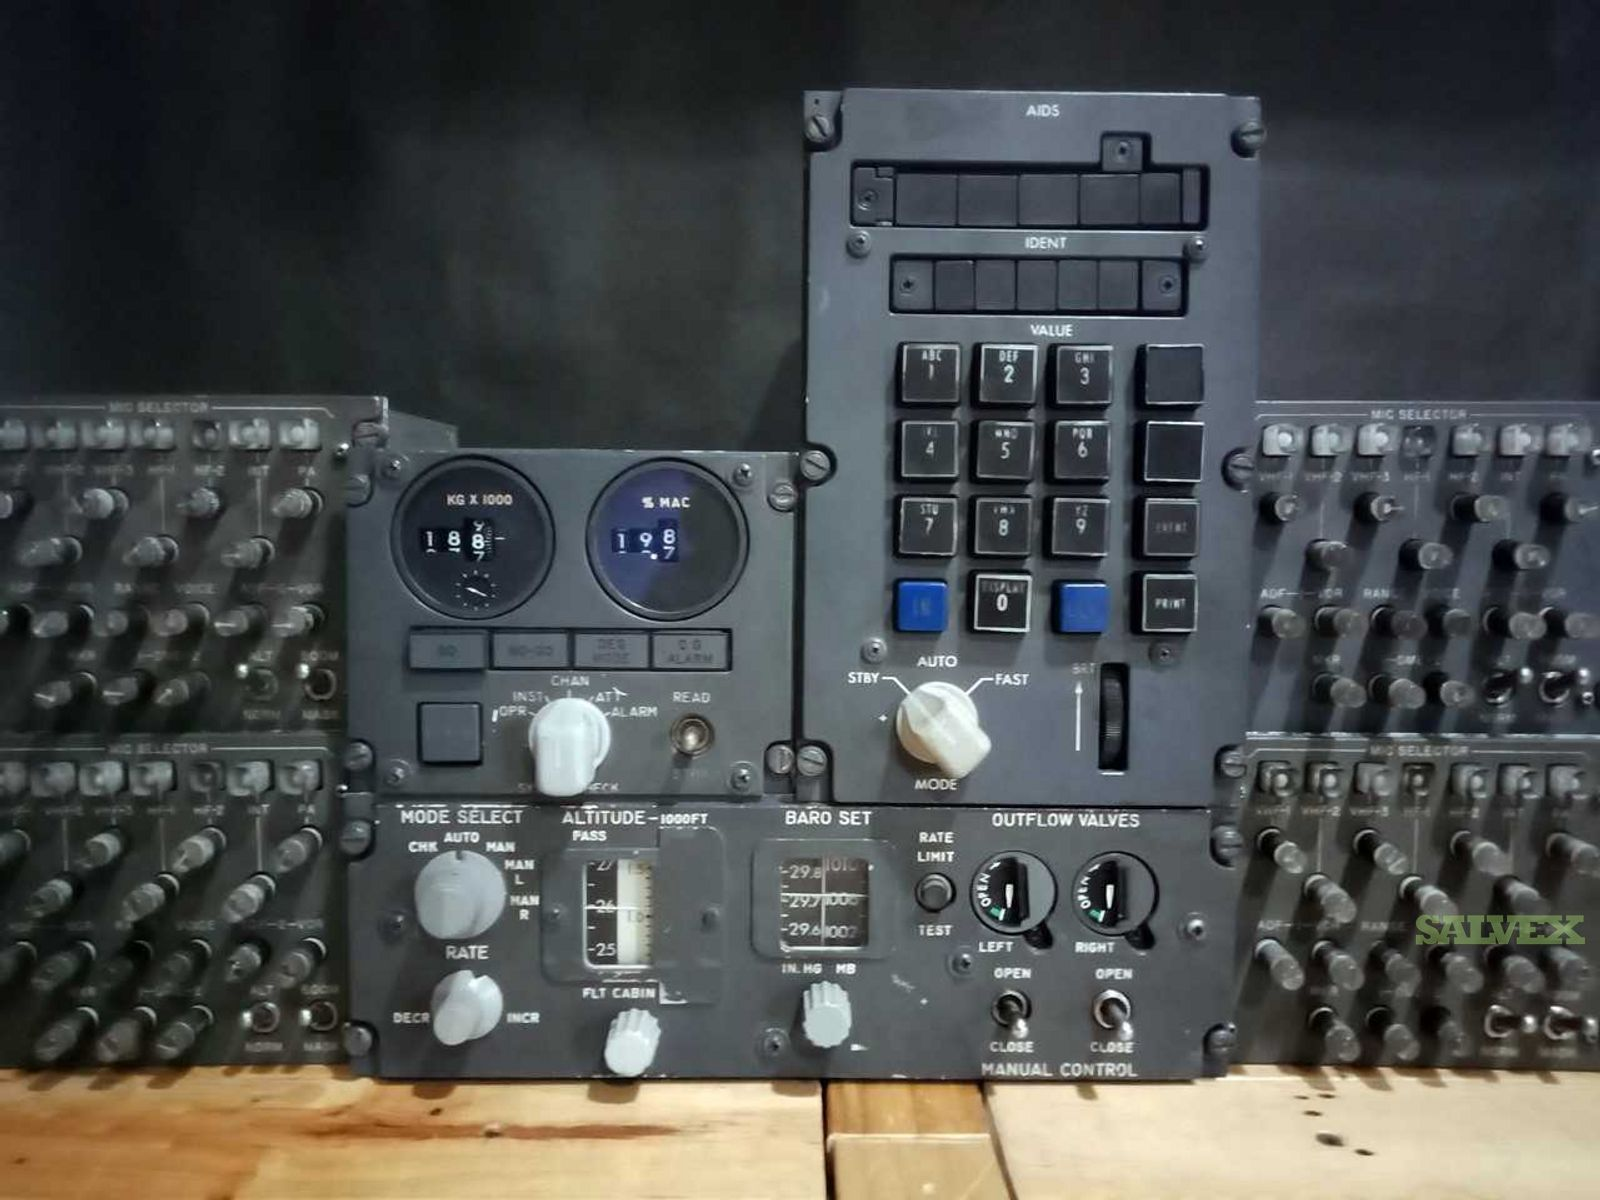 Control Panel, Audio Selector, Flight Entry Panels for B747 (7 Units)